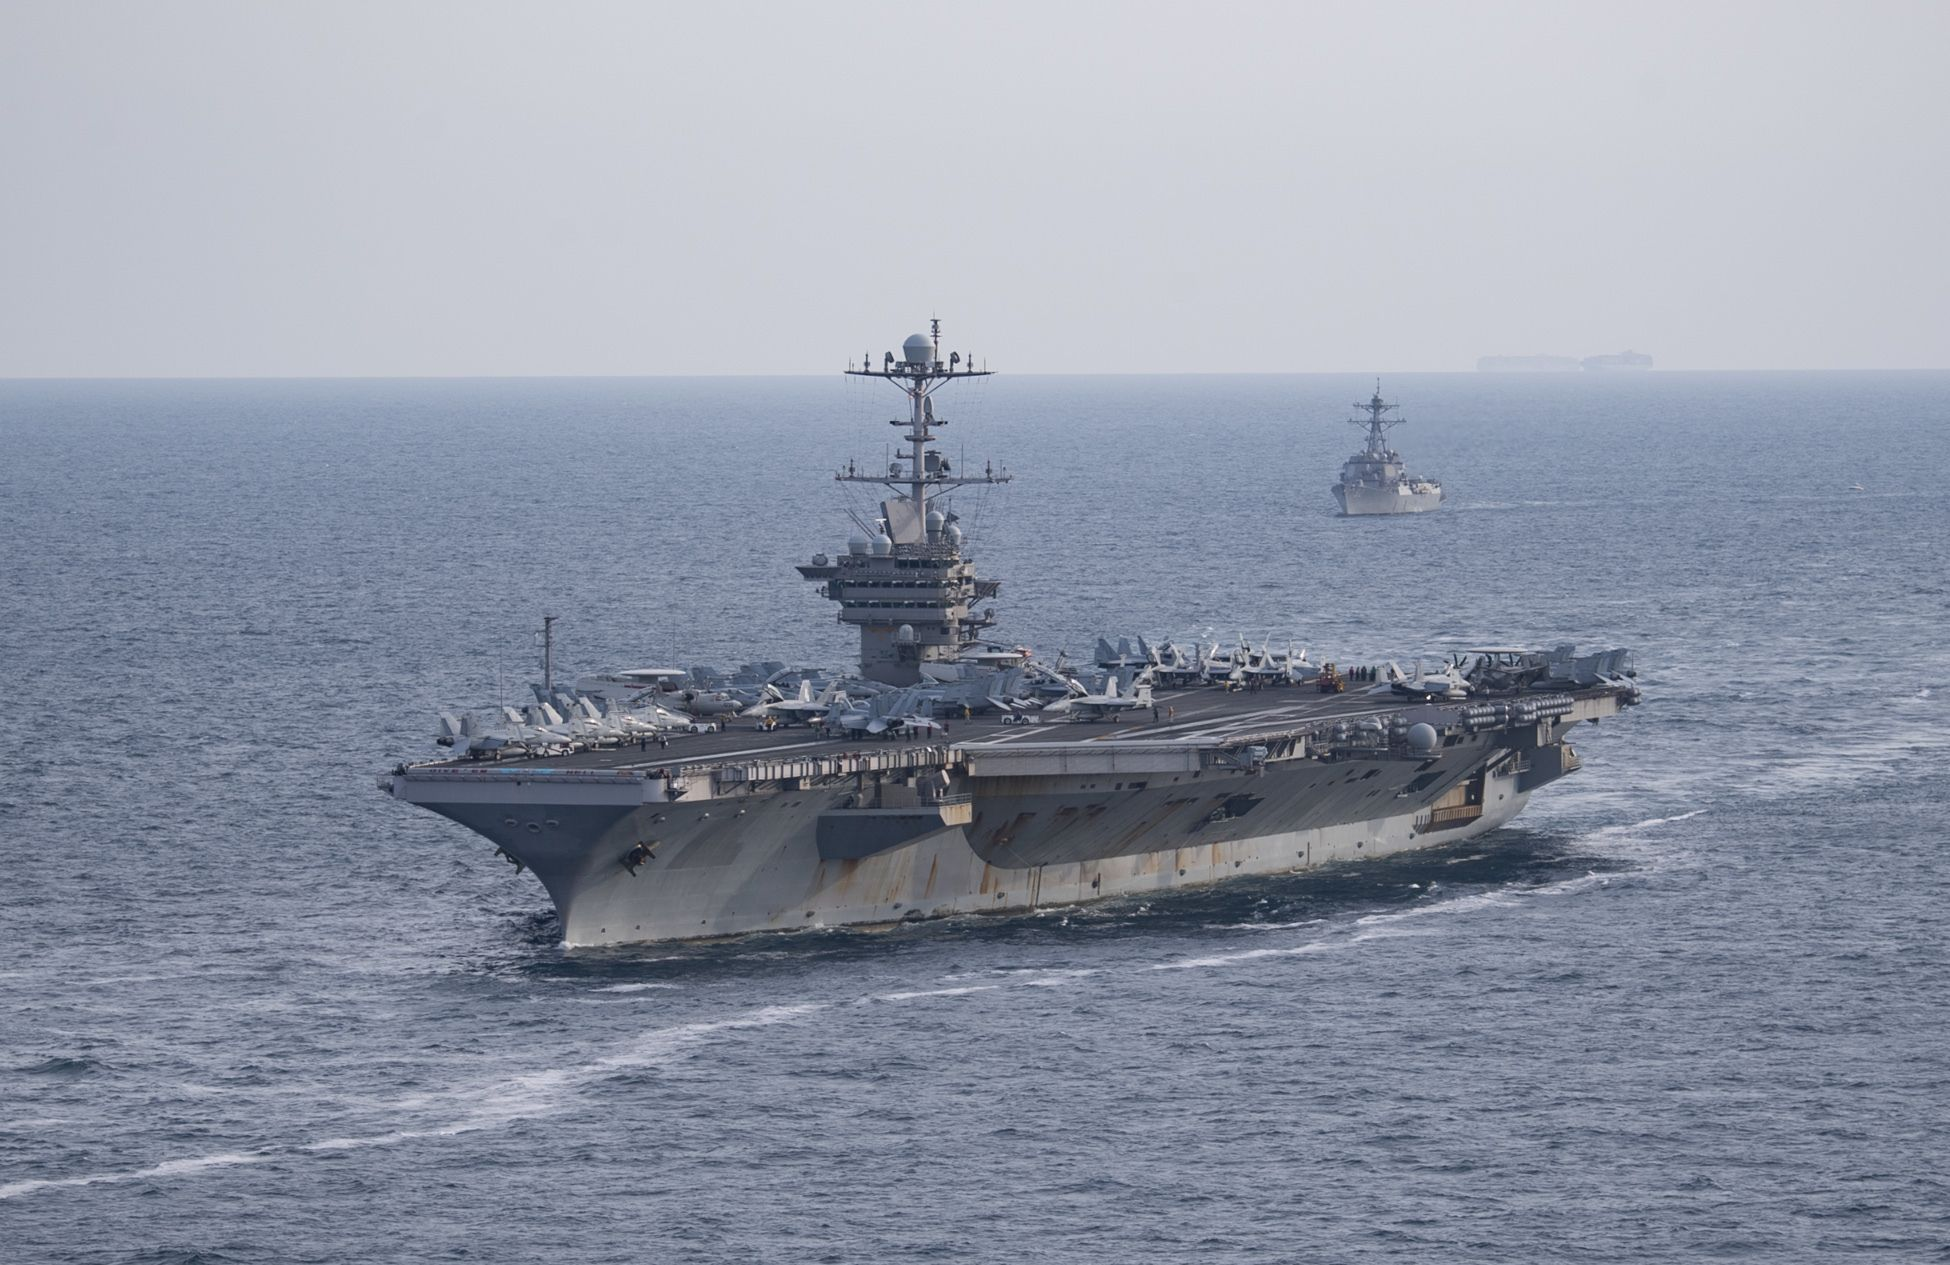 A U.S. Navy Carrier Strike Group is Deploying—Without the Carrier